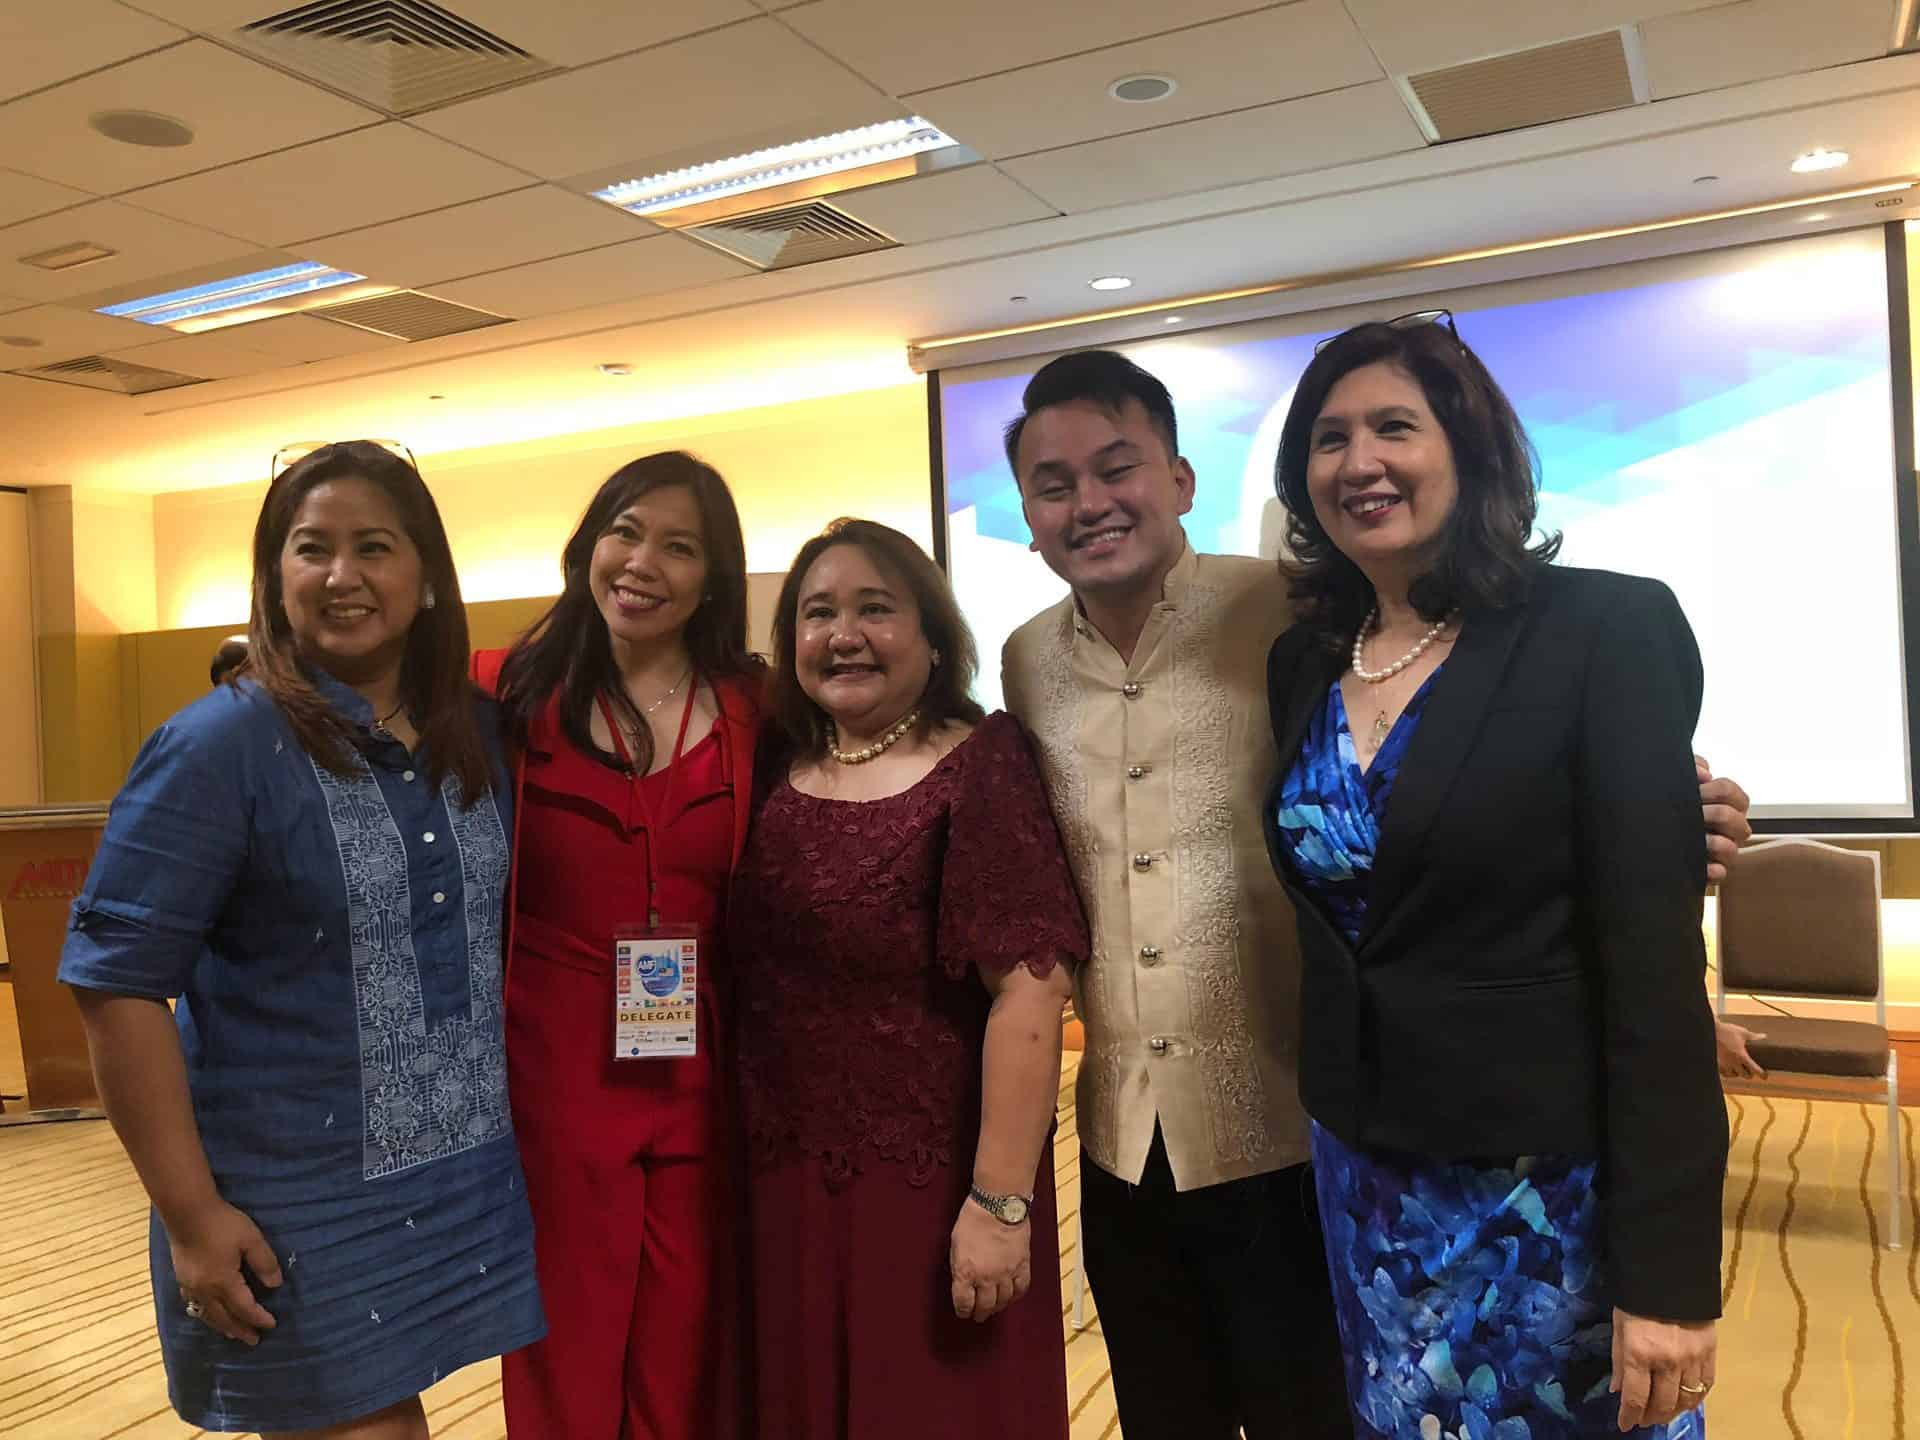 Margot Torres and Ralph Layco with Arlene Padua, Faith Abano and Gwen Albarracin